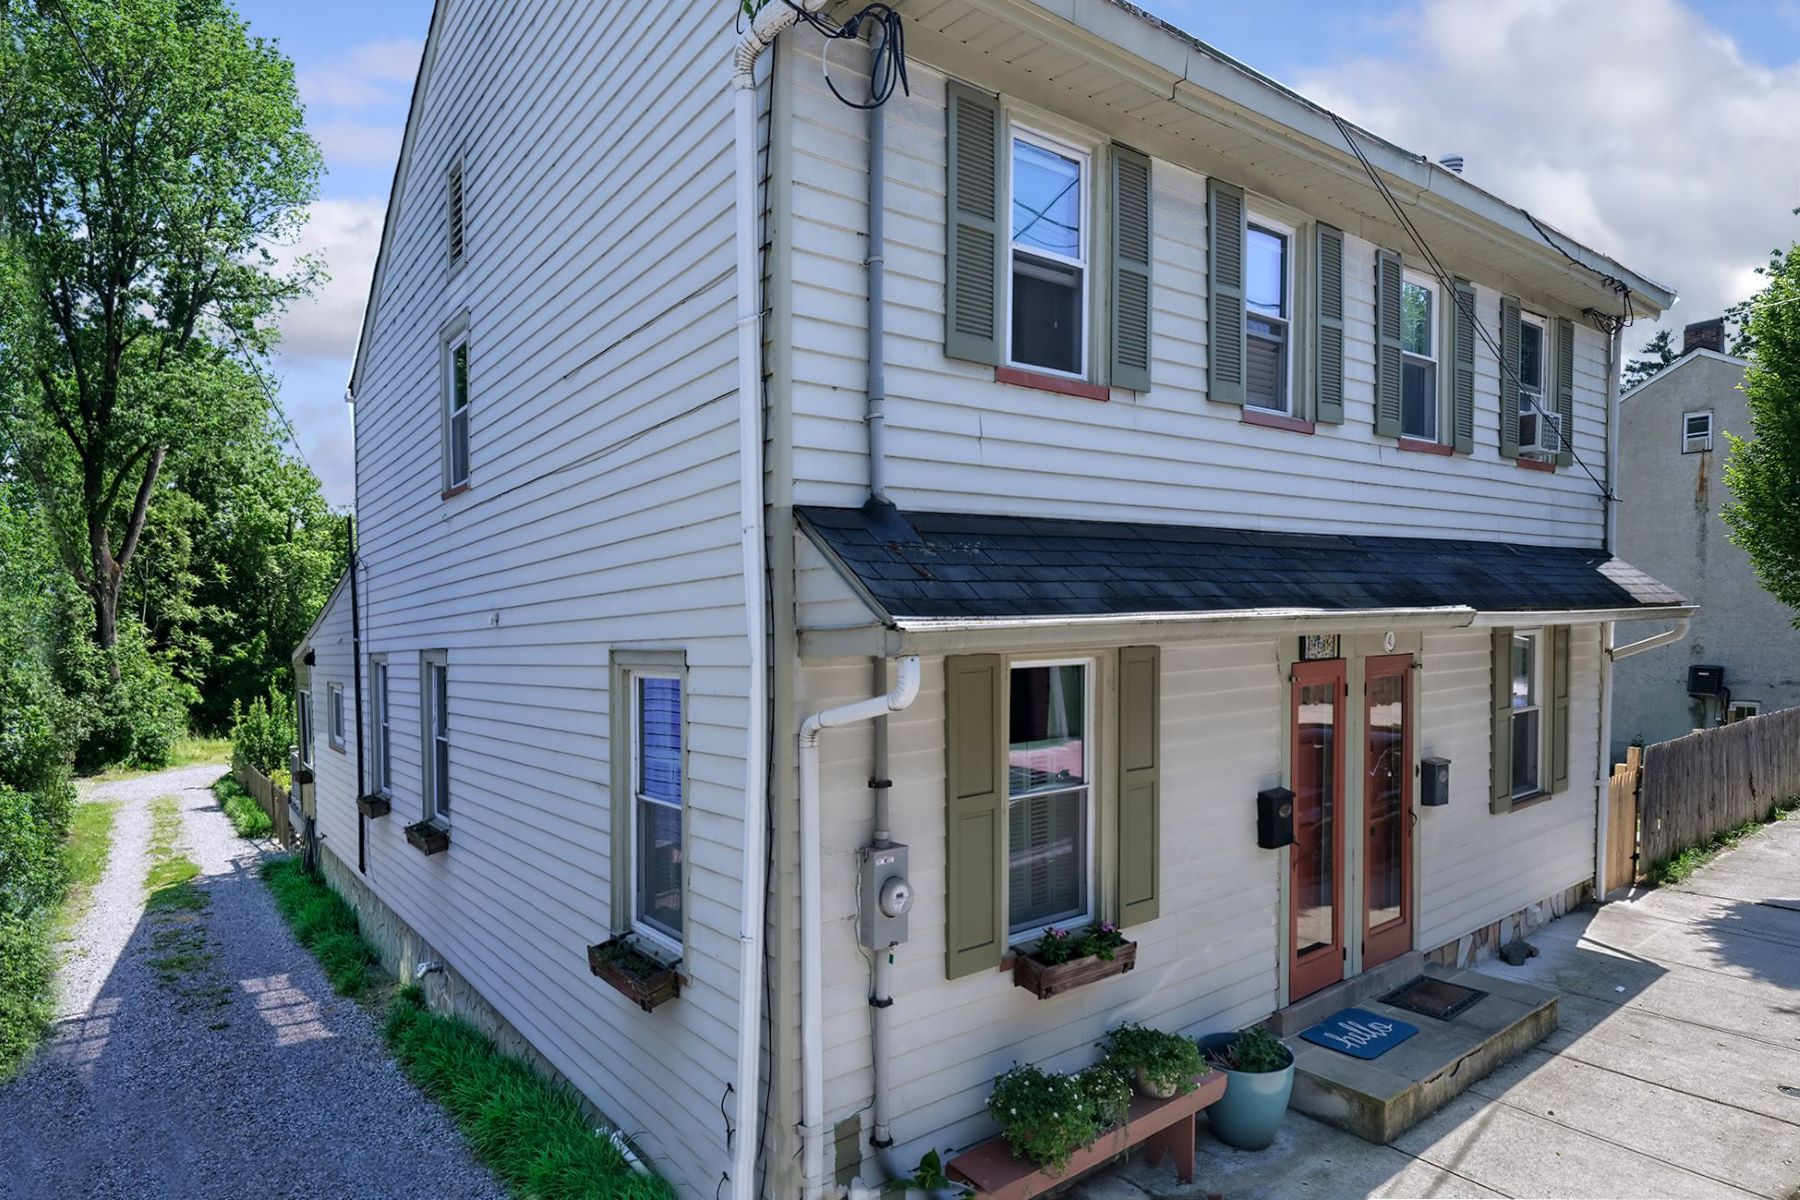 Single Family Homes のために 売買 アット Don't Let This One Get Away! 43 Ferry Street, Lambertville, ニュージャージー 08530 アメリカ